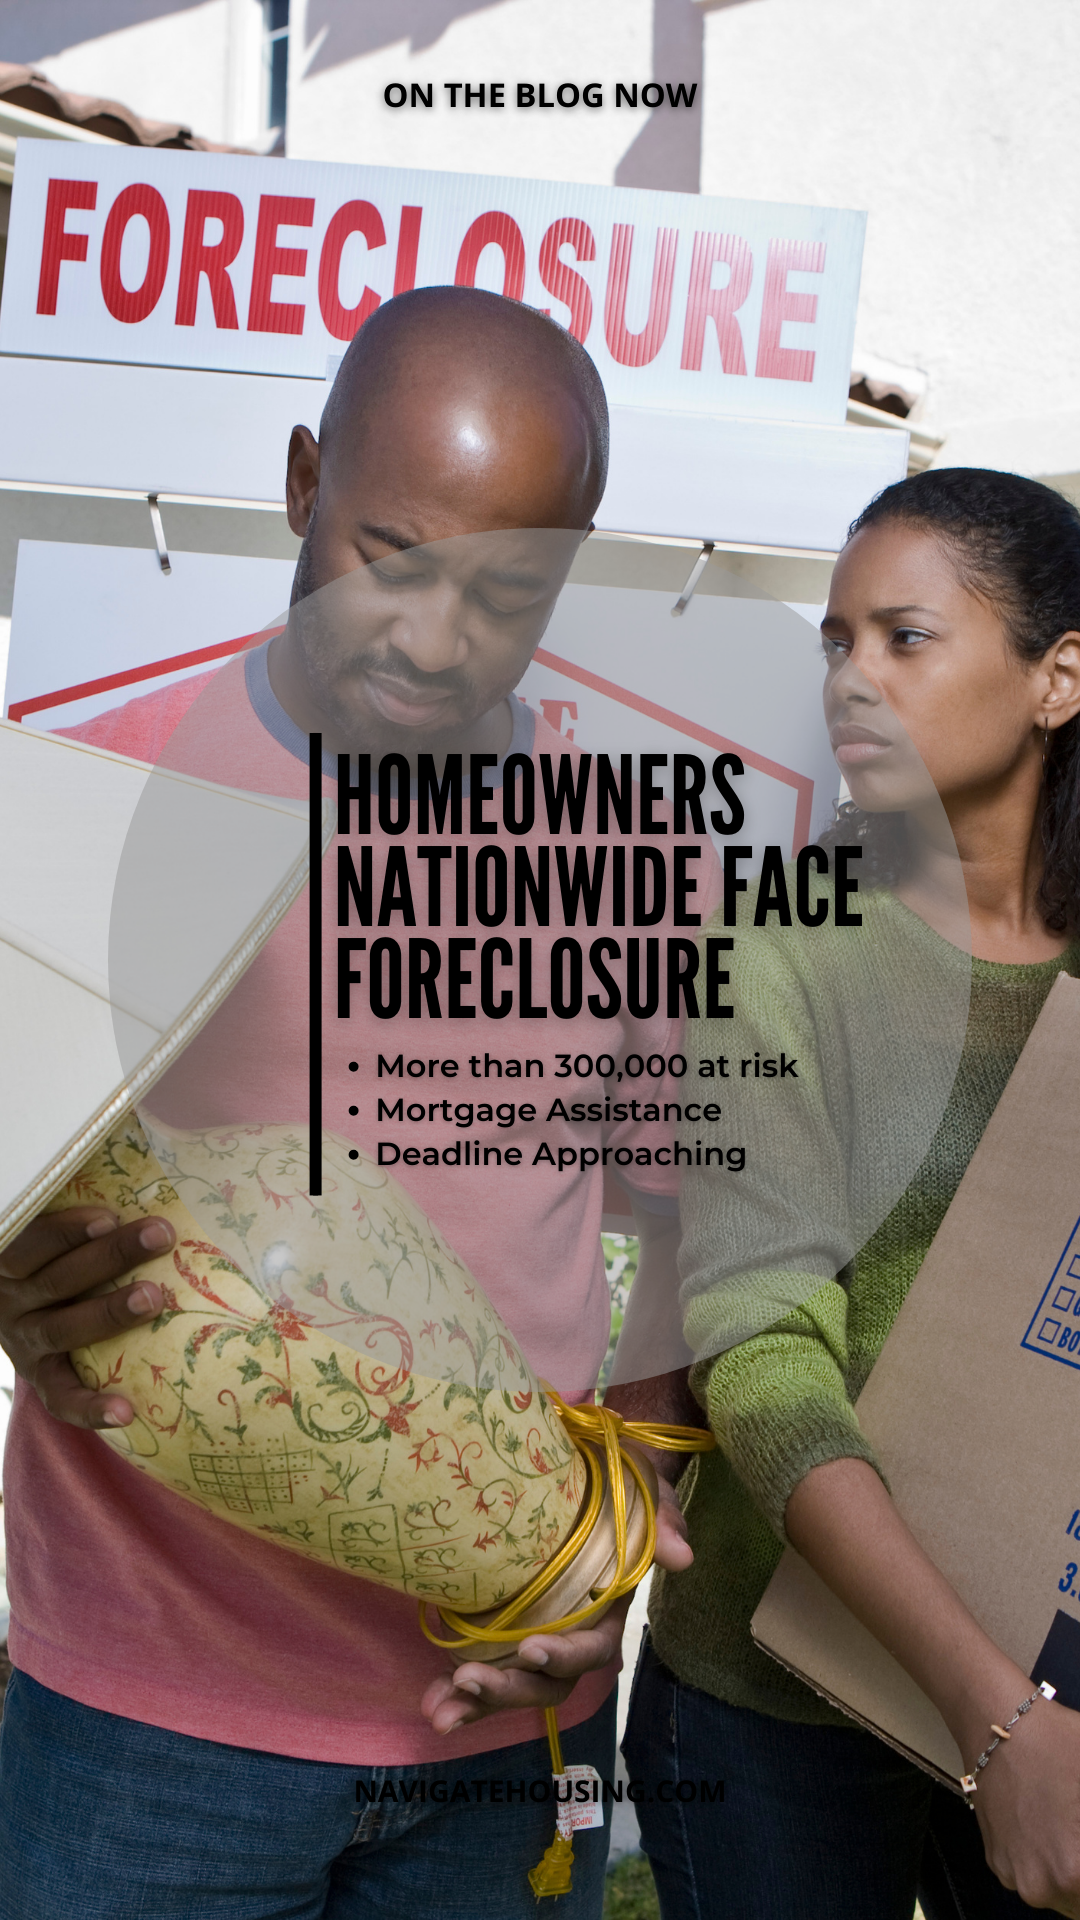 Homeowners Nationwide Face Foreclosure